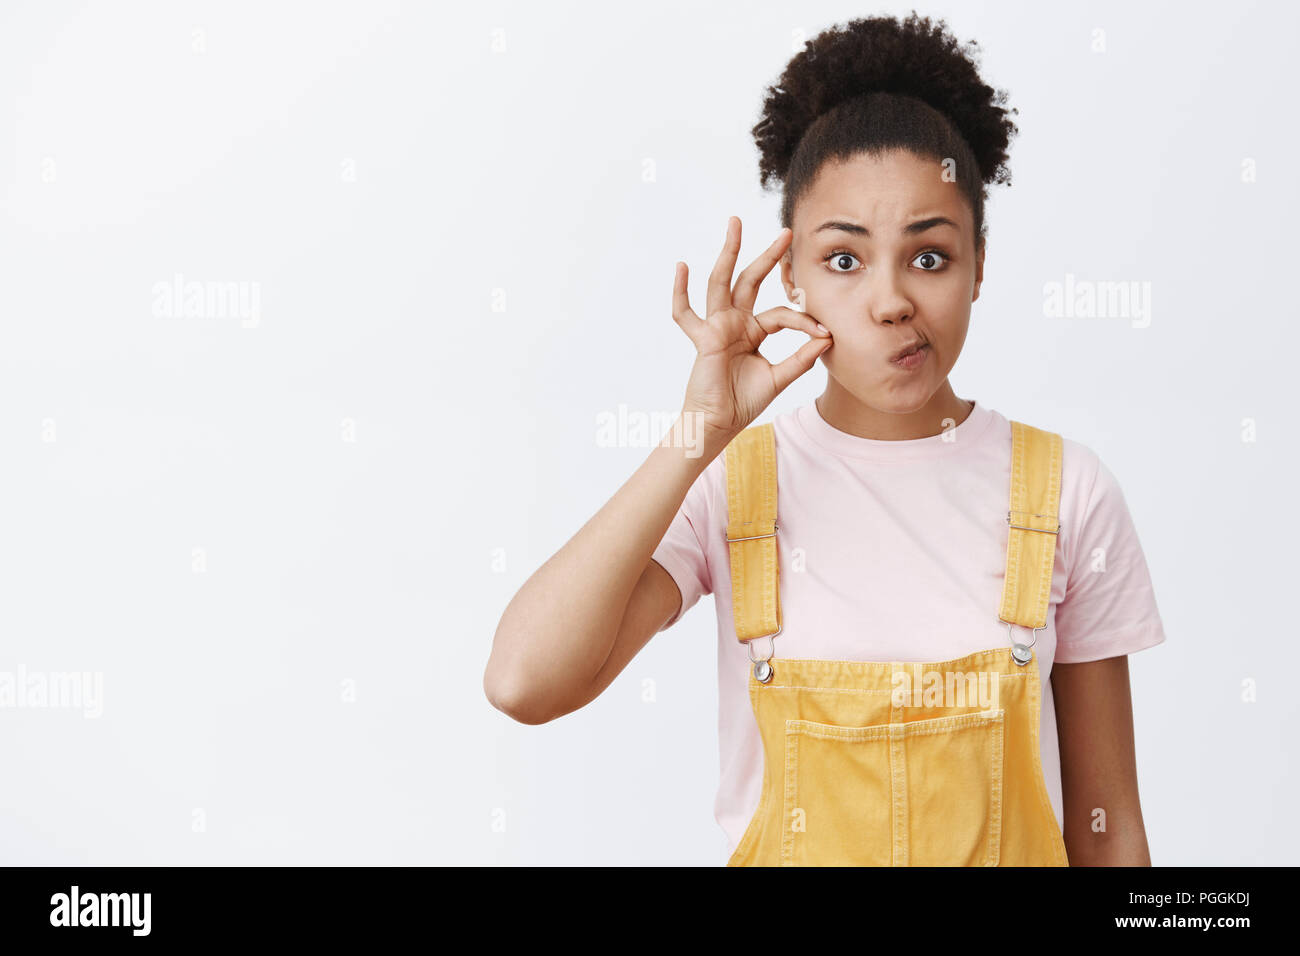 Zipping my mouth forever, secret safe. Portrait of charming serious African American woman making promise, shutting lips with invisible zip, pouting mouth right and holding finger near cheek - Stock Image